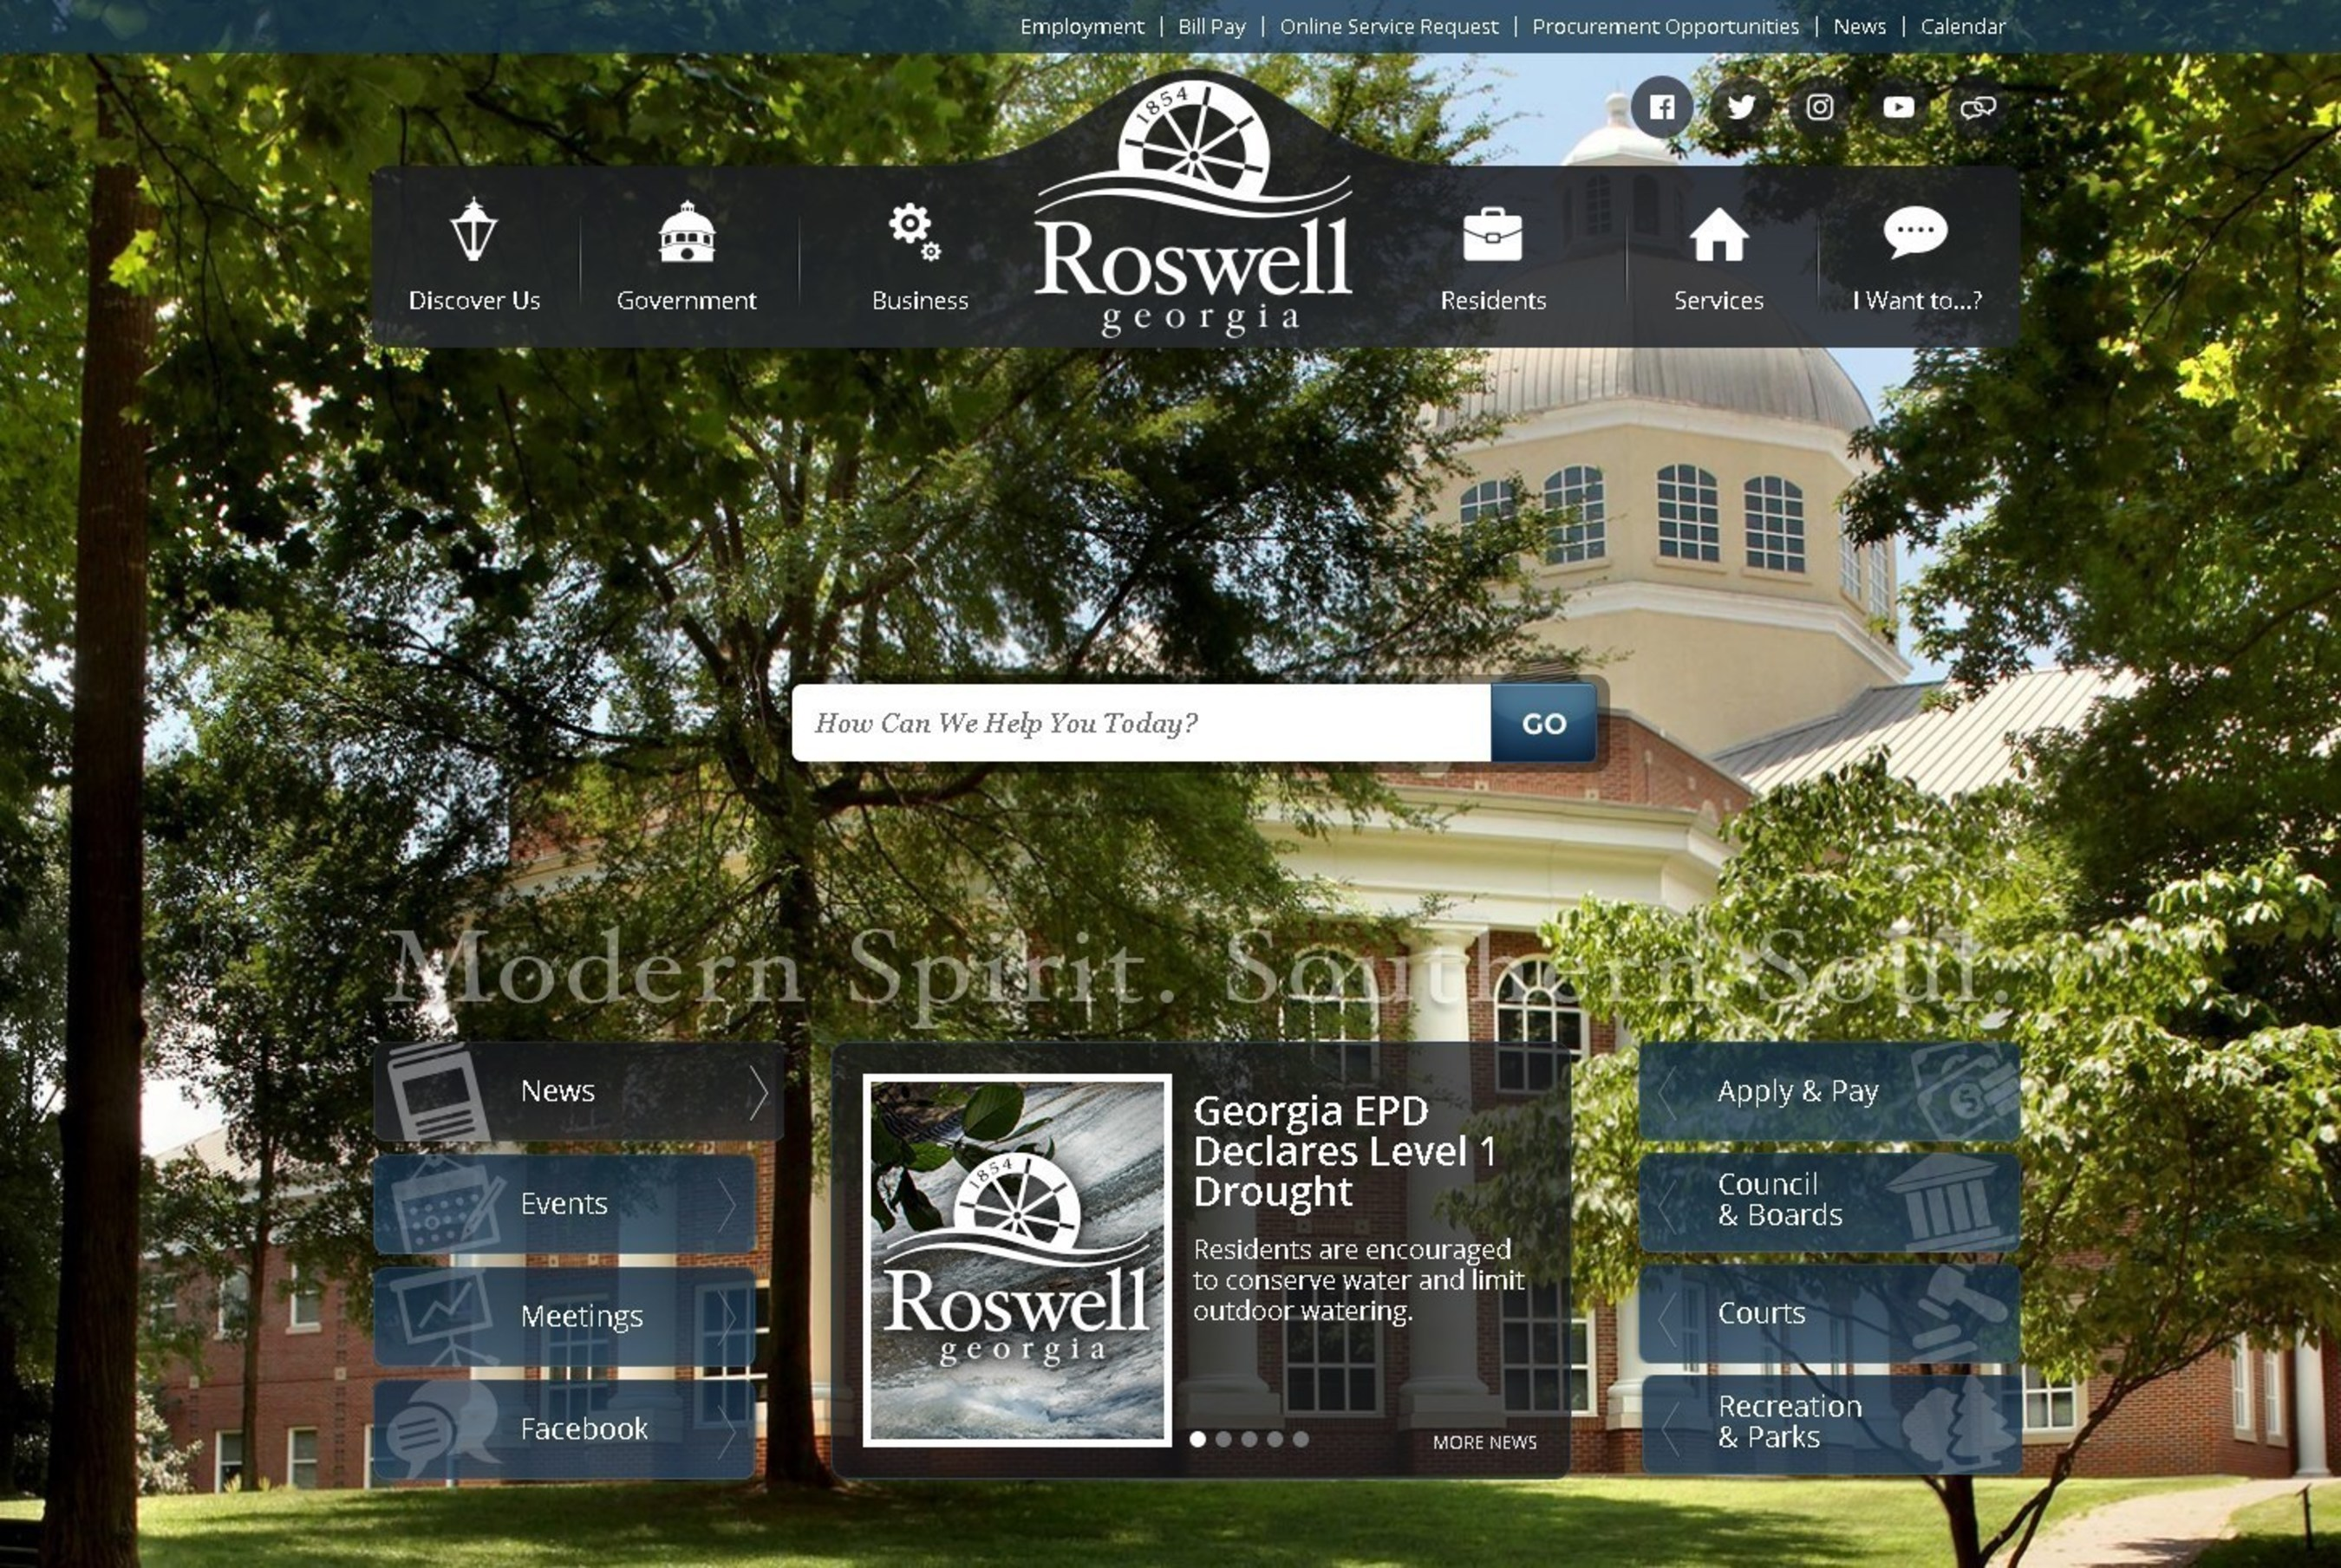 The City of Roswell, Georgia won a National Association of Government Web Professionals Pinnacle Award for its Vision-designed website, which features a prominent search bar on the homepage that makes it easy for visitors to find information.